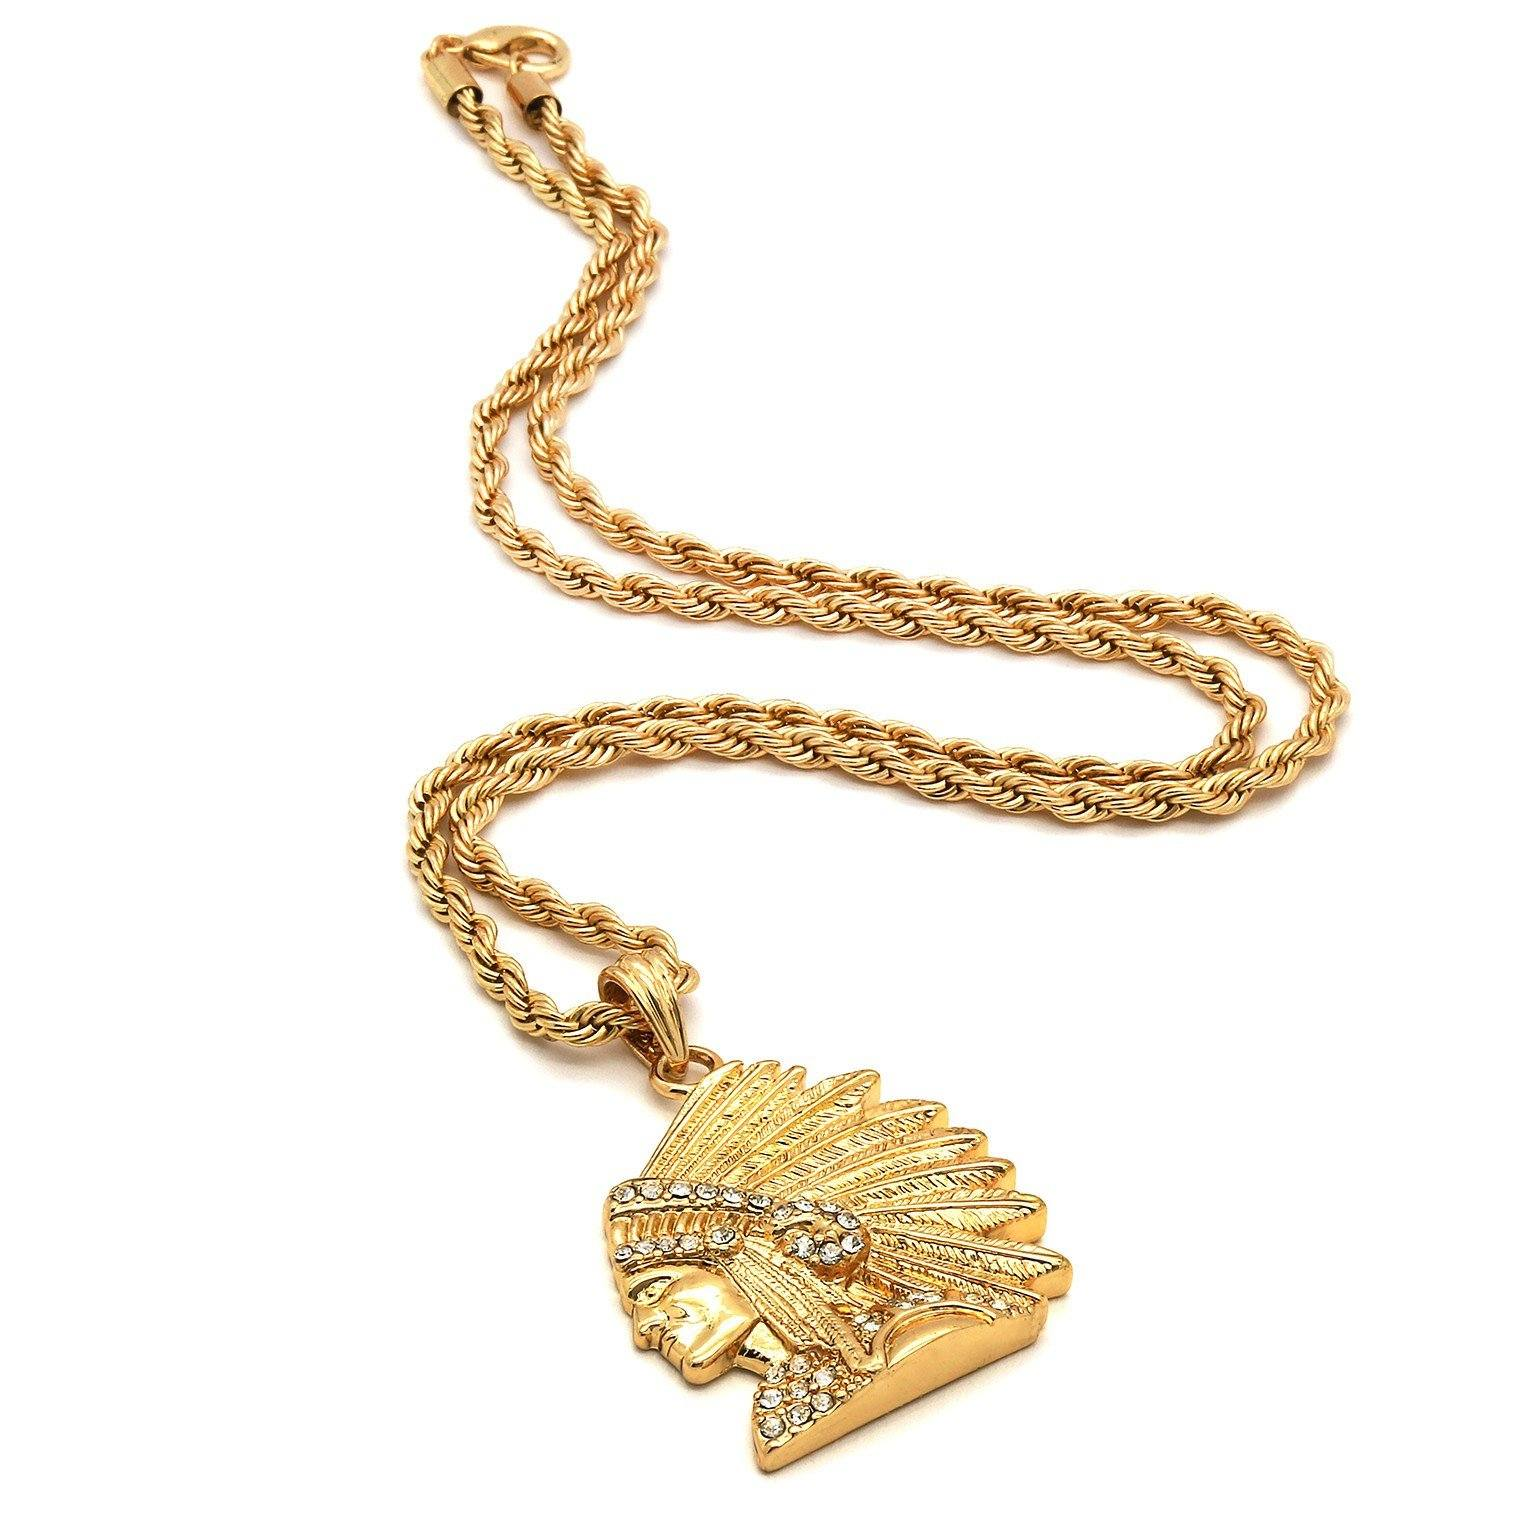 INDIAN CHIEF PENDANT WITH GOLD ROPE CHAIN